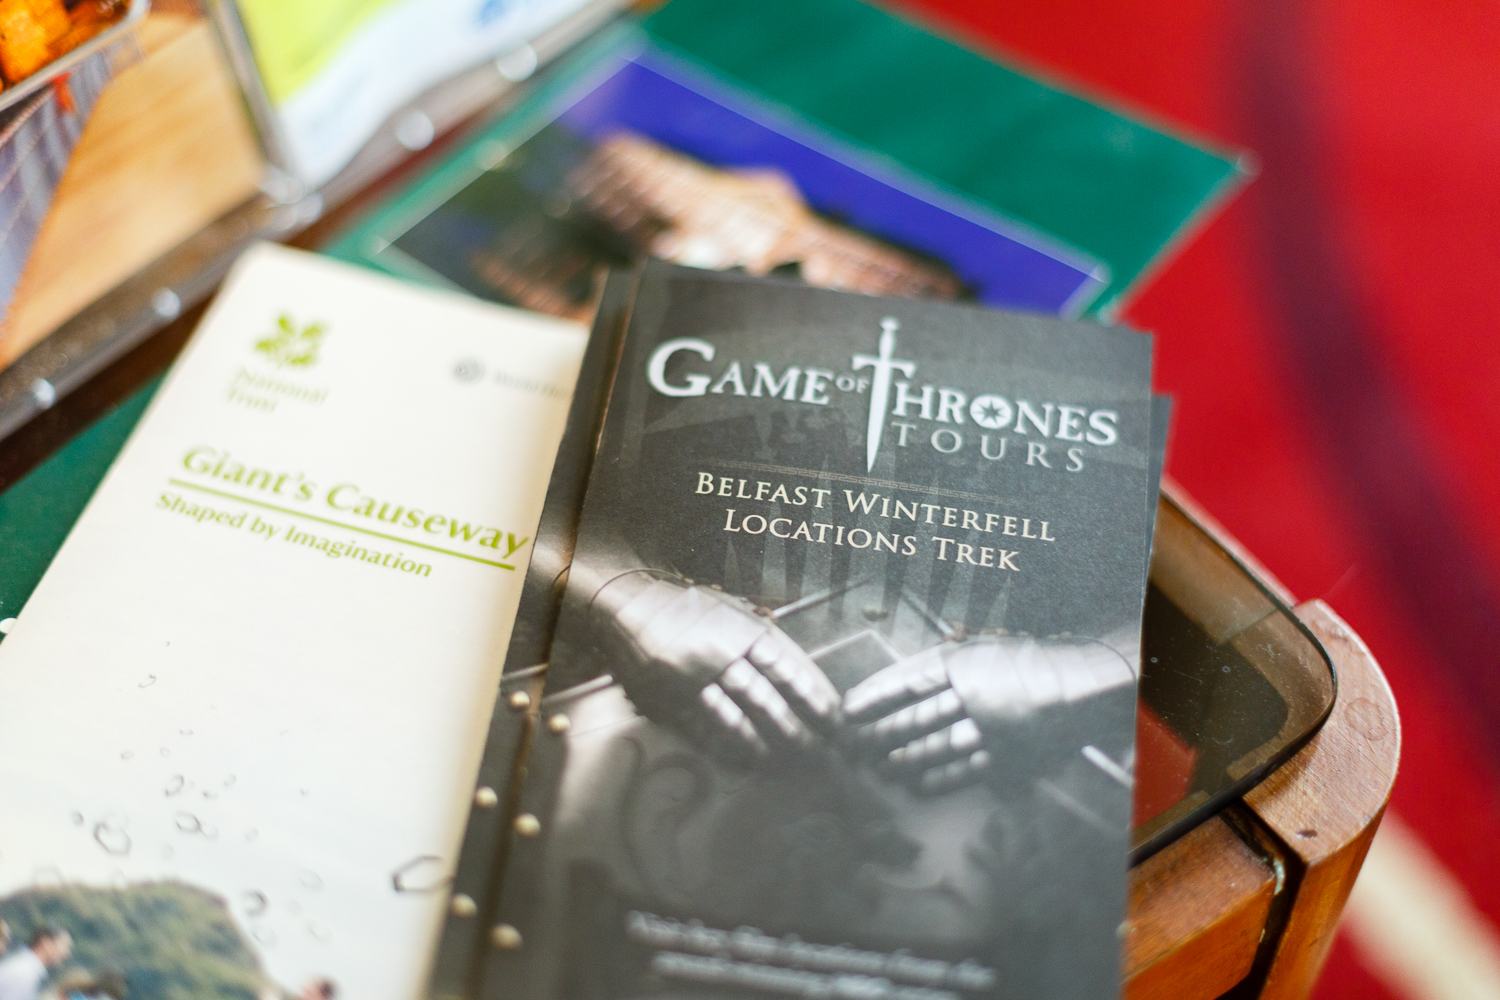 Game of Thrones tours - photo by abigail*ryan